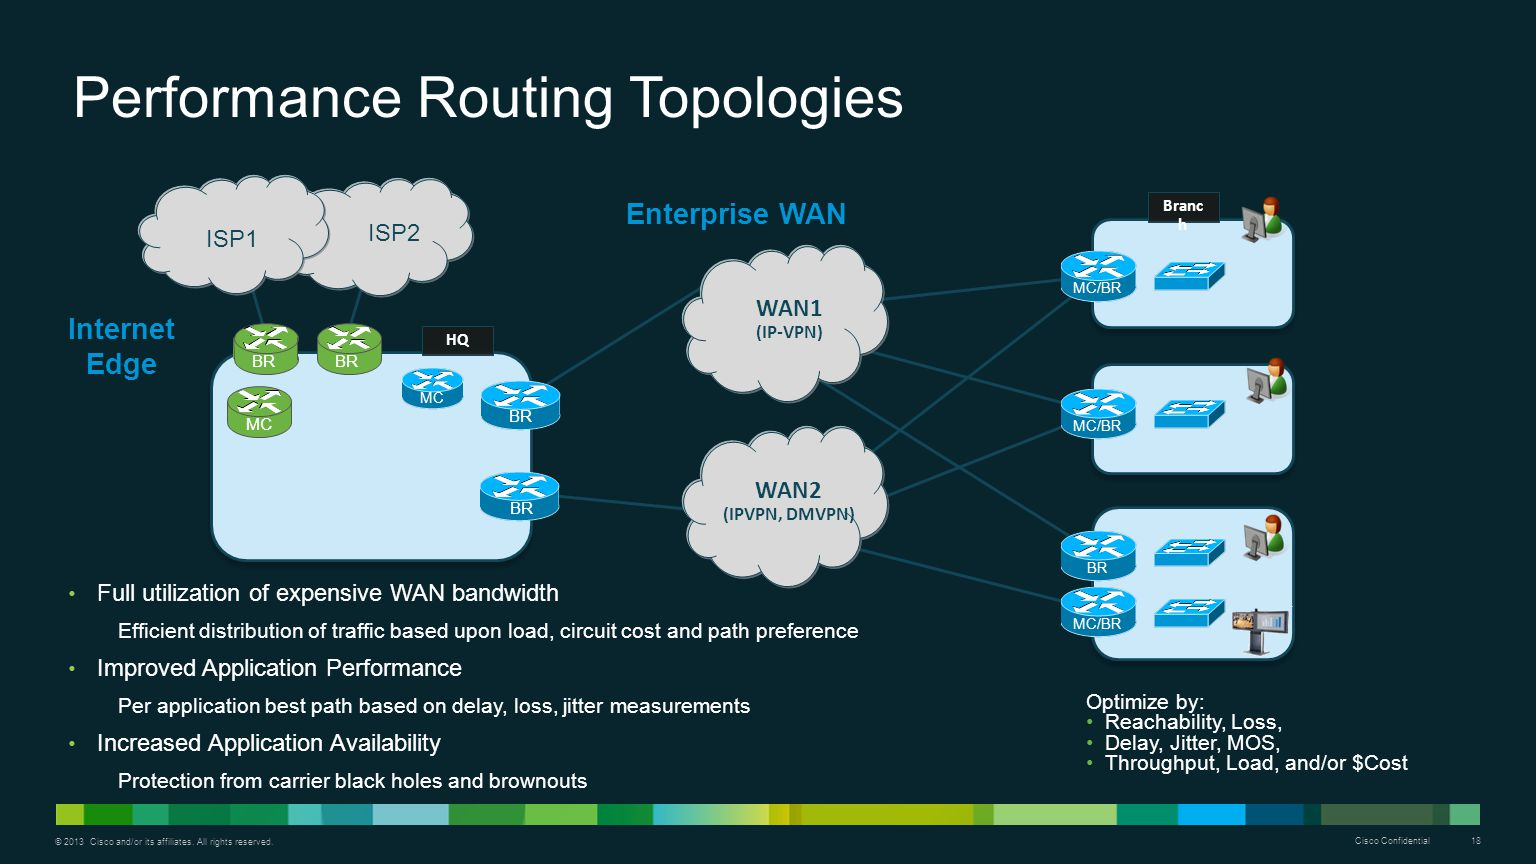 Performance Routing Topologies